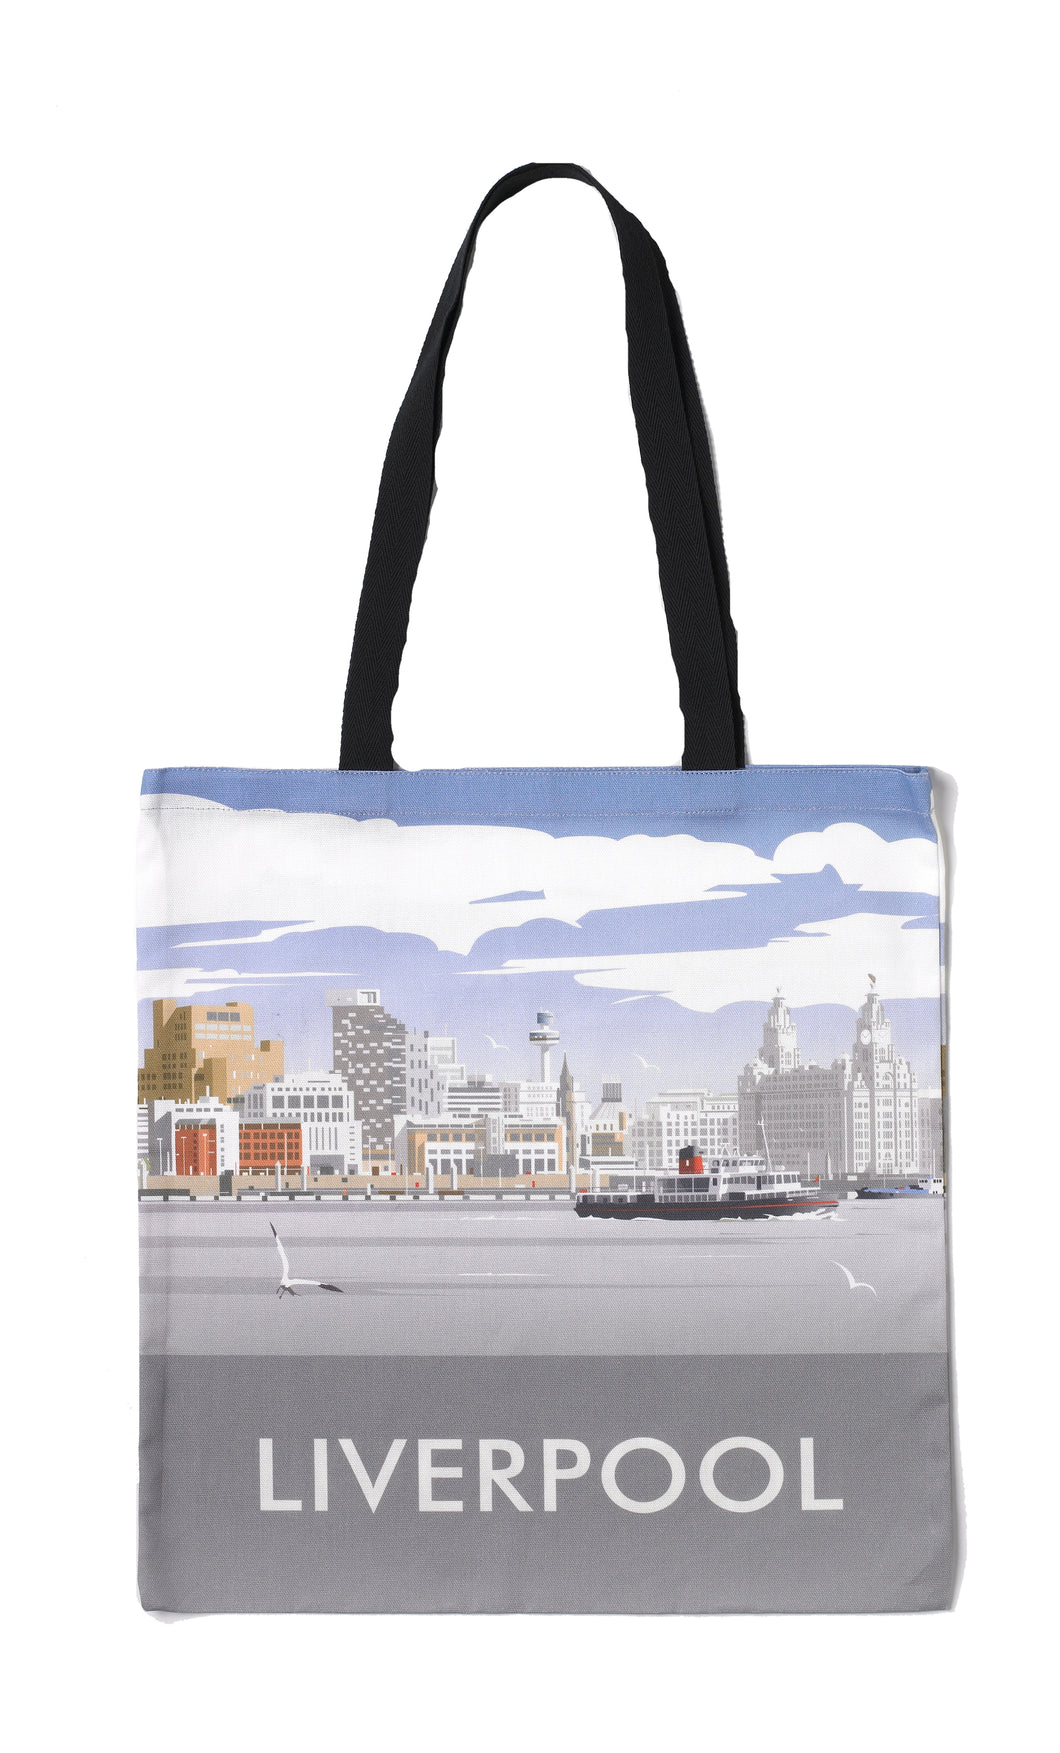 Long handled tote shopper bag with an illustration of Liverpool's skyline.